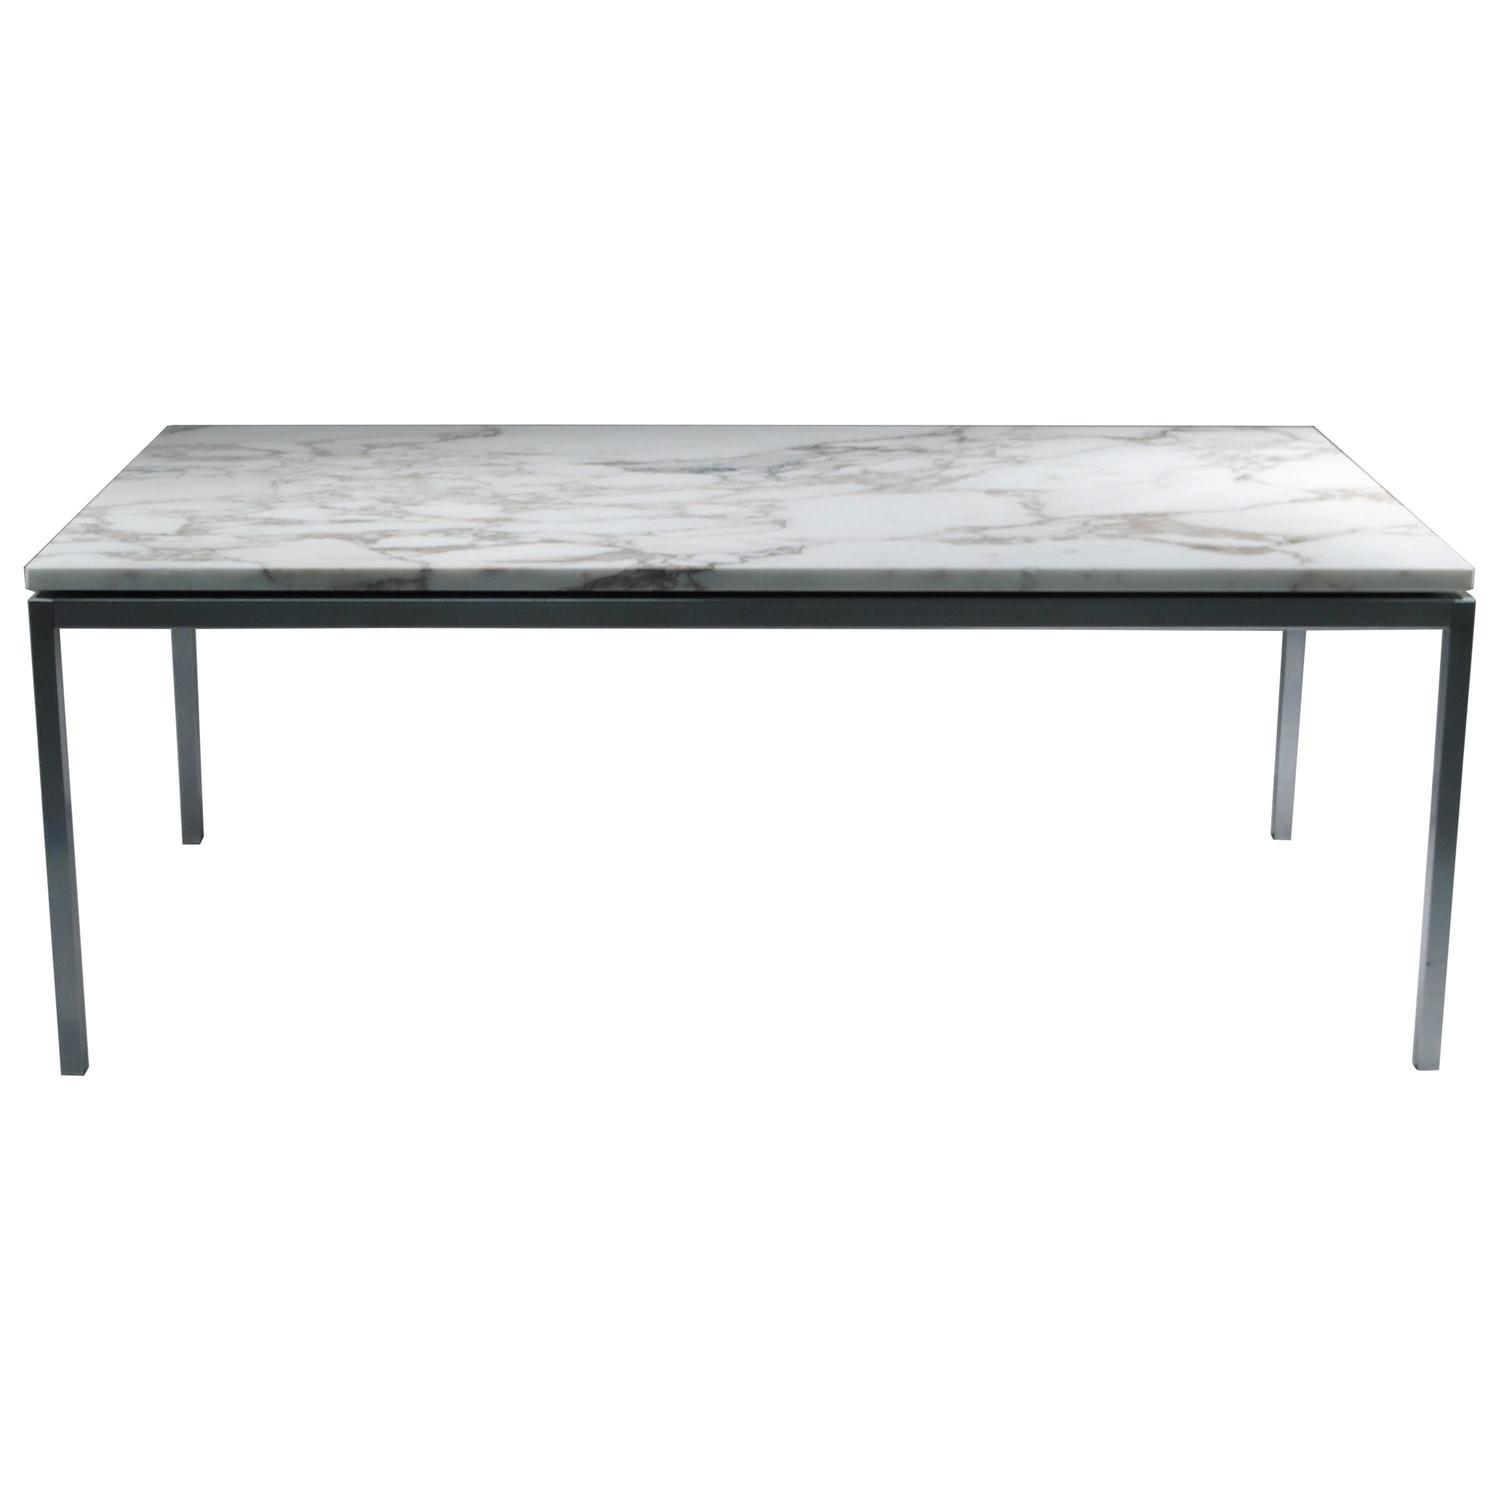 Florence knoll marble top coffee table at 1stdibs Coffee tables with marble tops